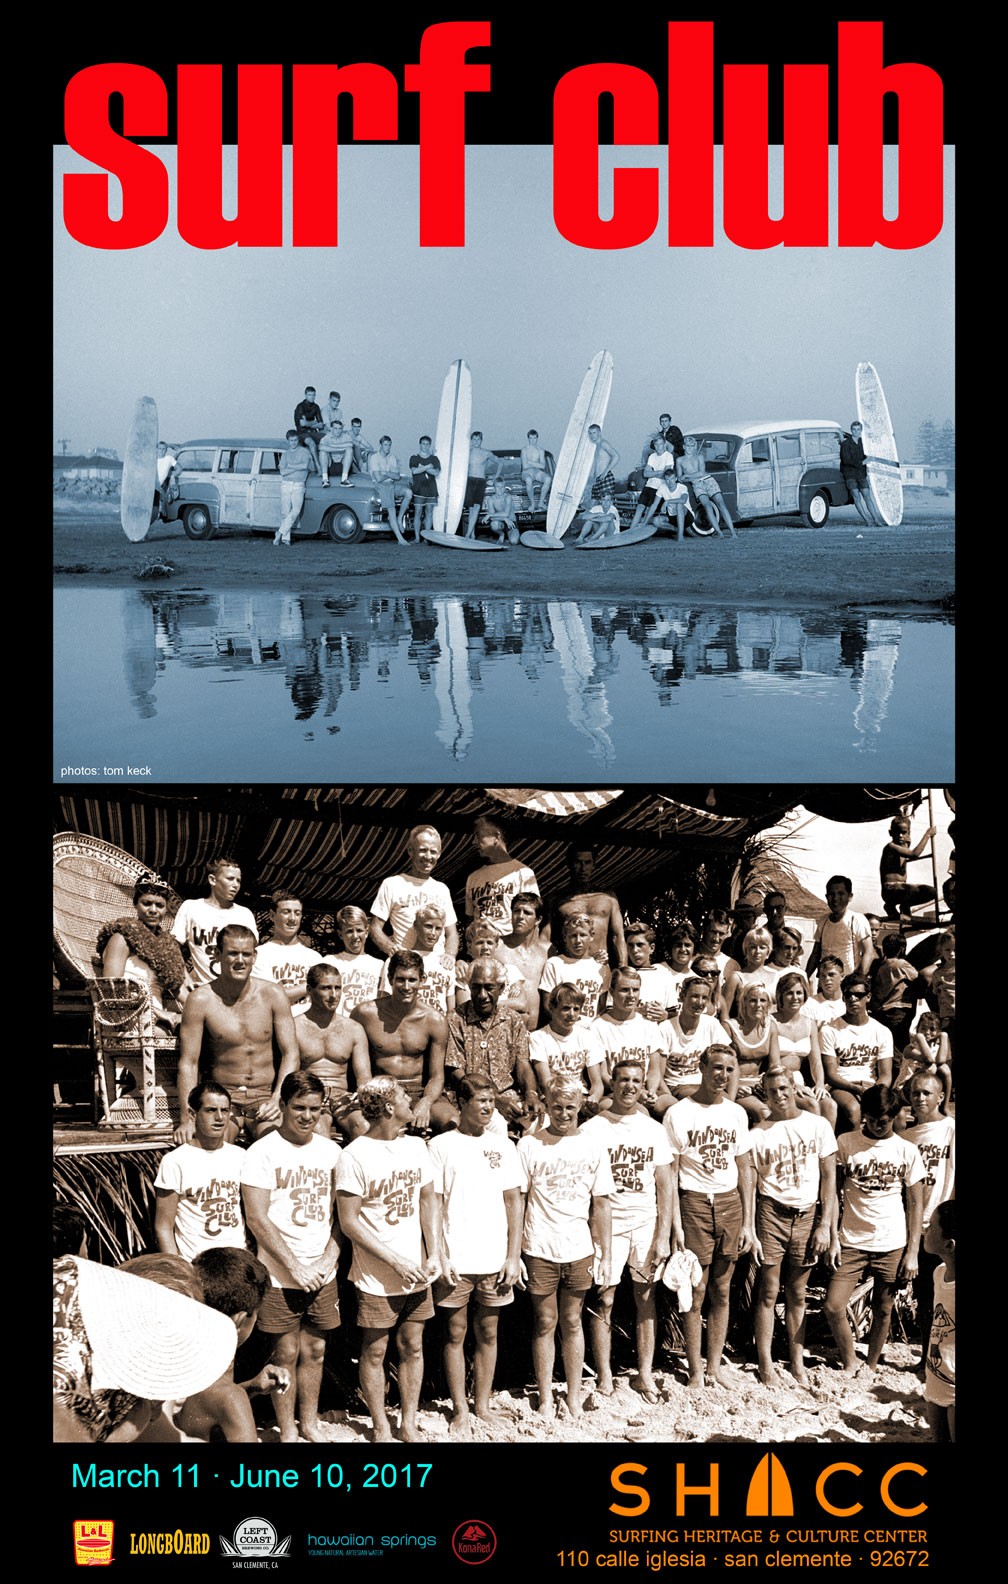 Crystal Pier San Diego, Surfing Heritage & Culture Center: Surfing Heritage Exhibit and ...